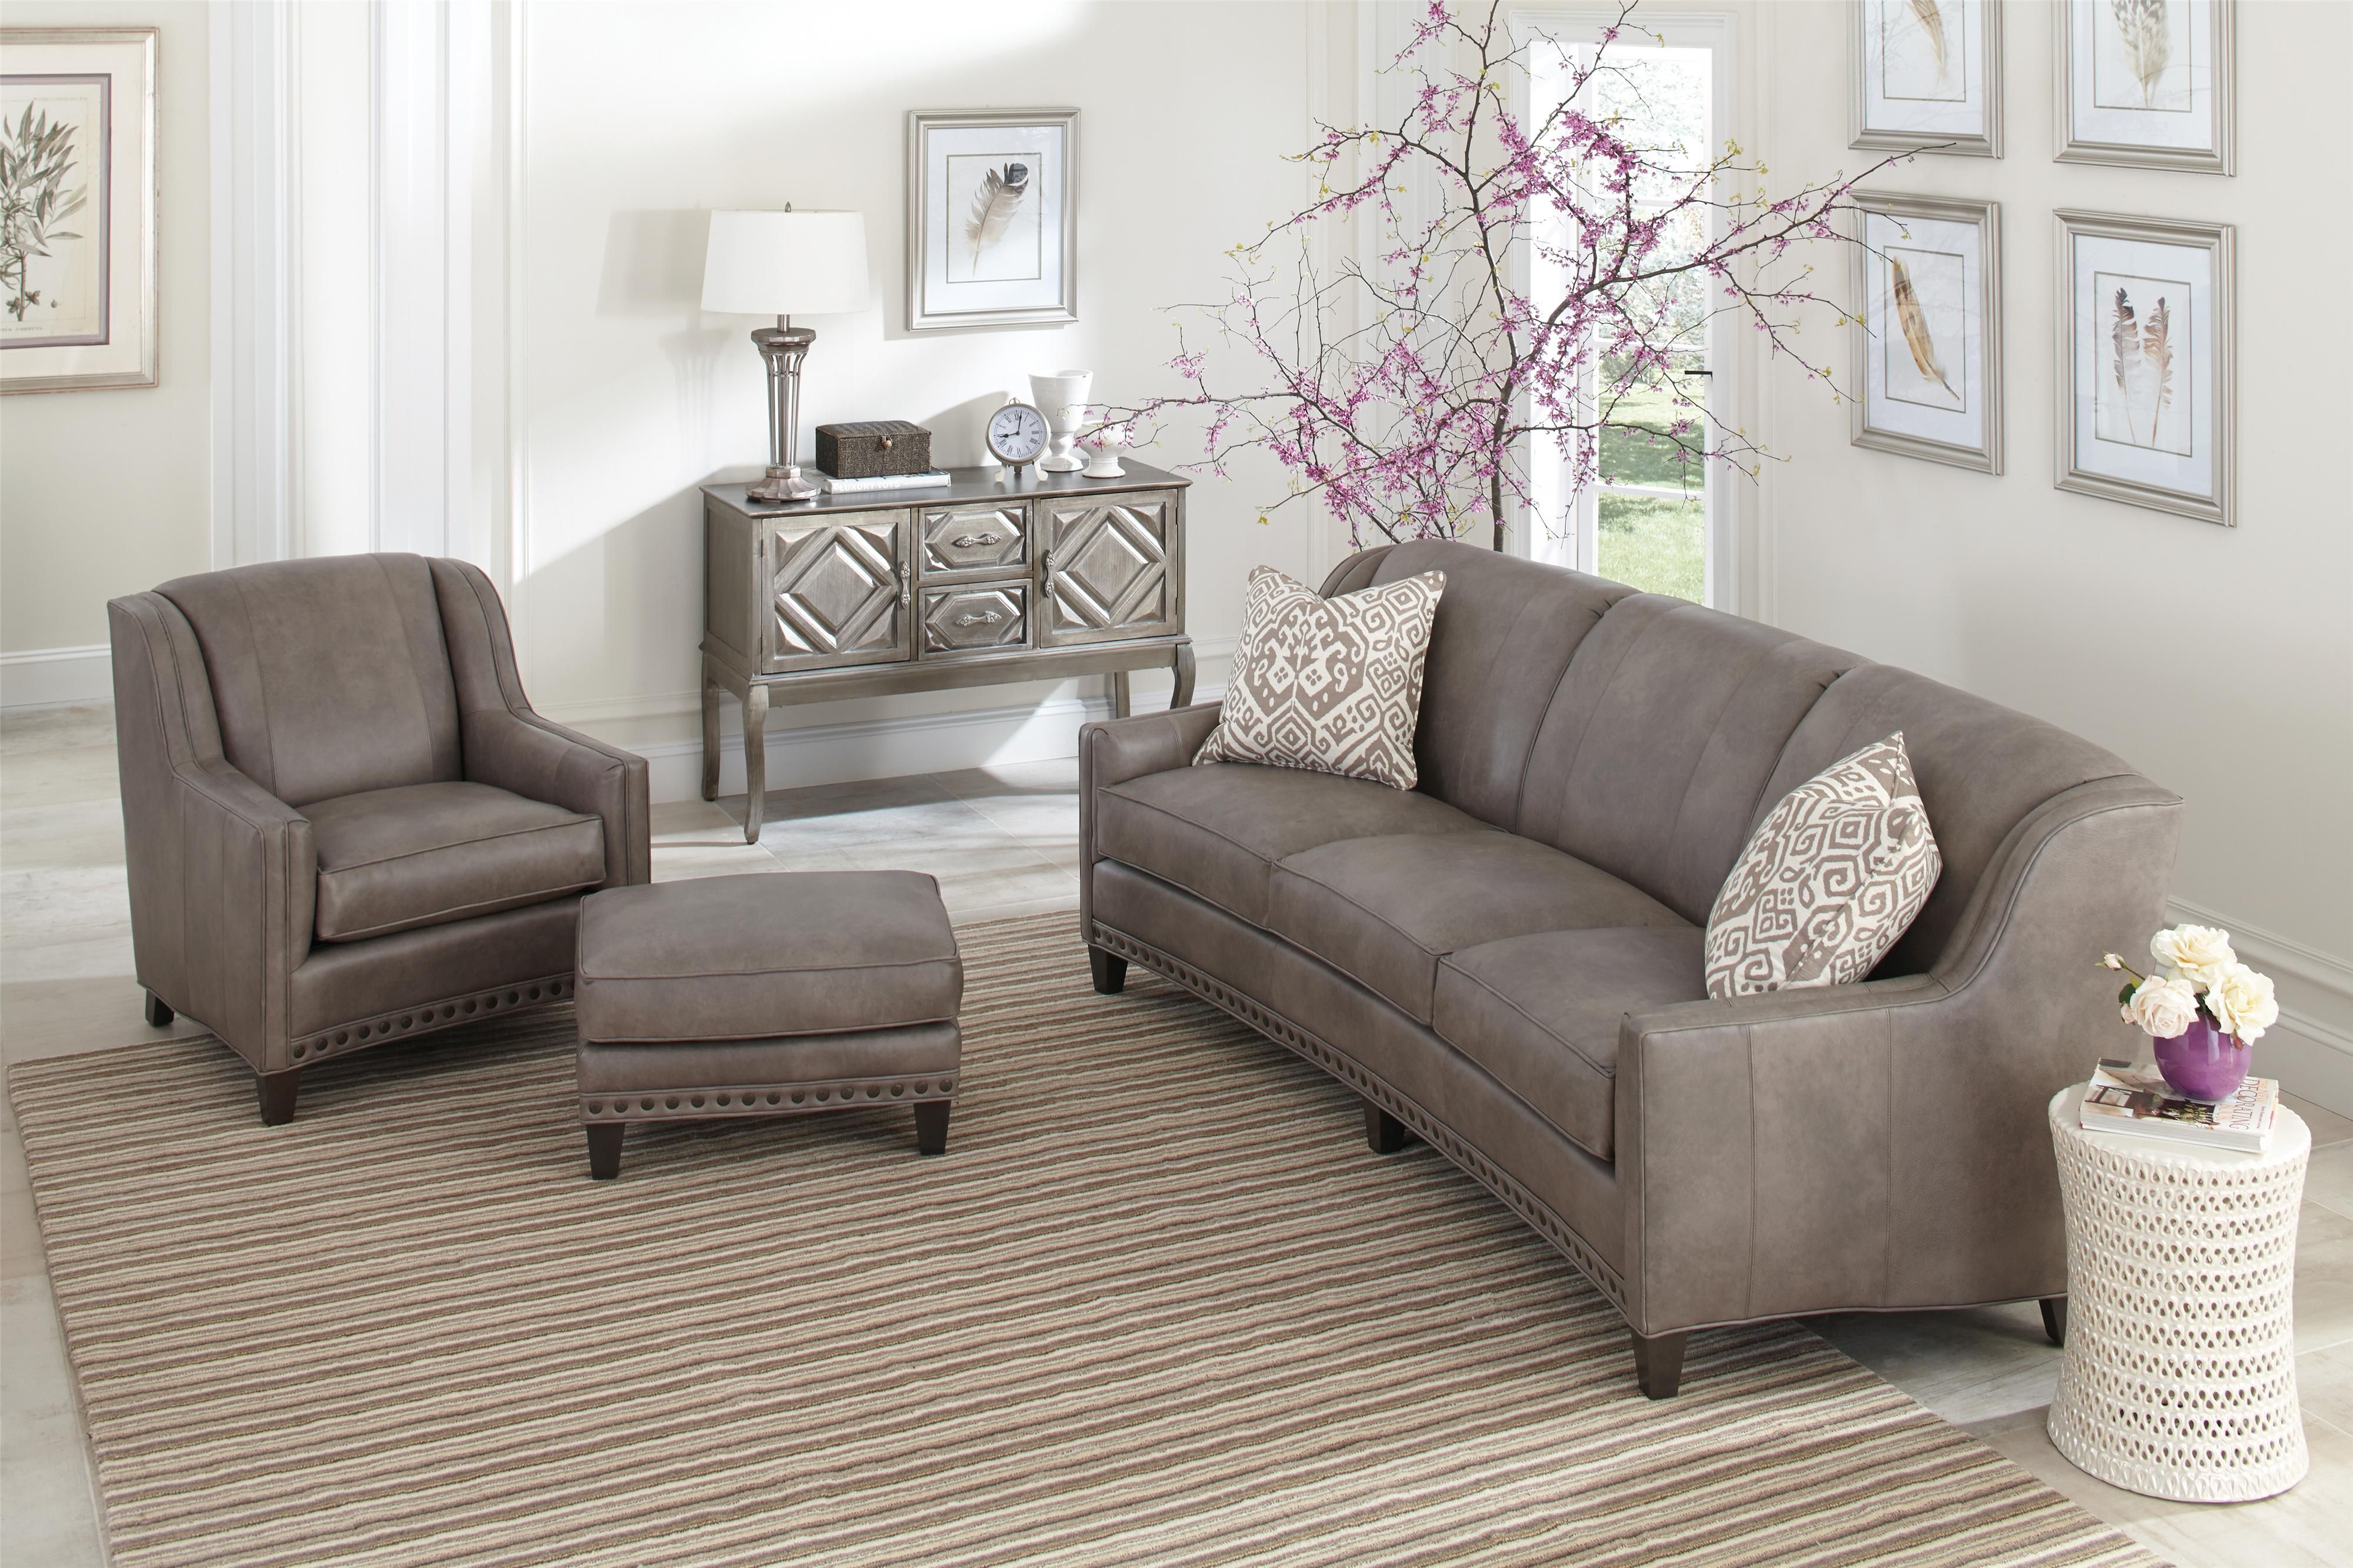 227 Slightly Curved Sofa With Sloping Track Arms And Nail Head